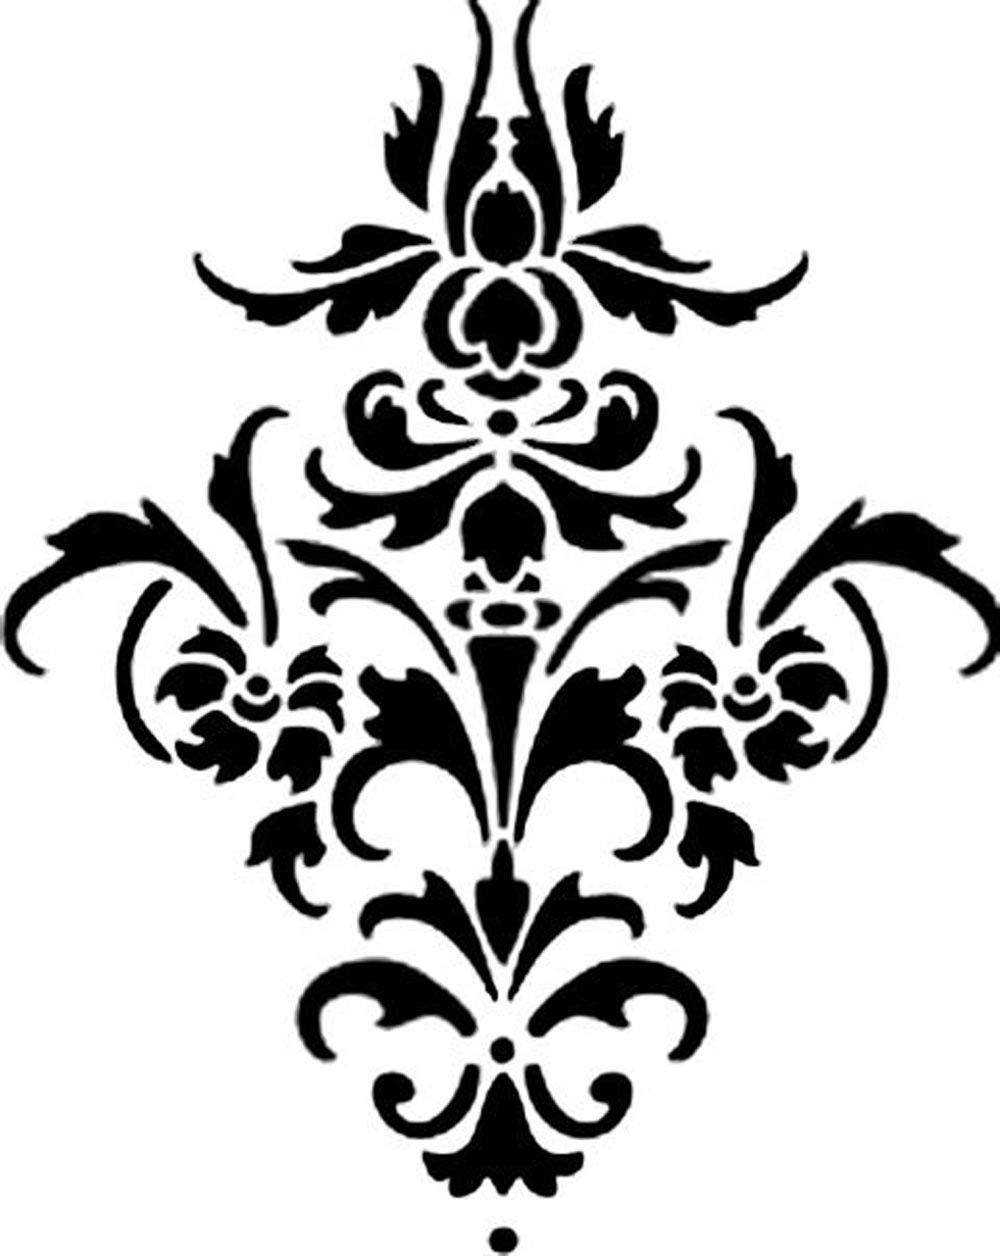 vinyl damask flourish decal filigrees pinterest motifs cuir et d co. Black Bedroom Furniture Sets. Home Design Ideas